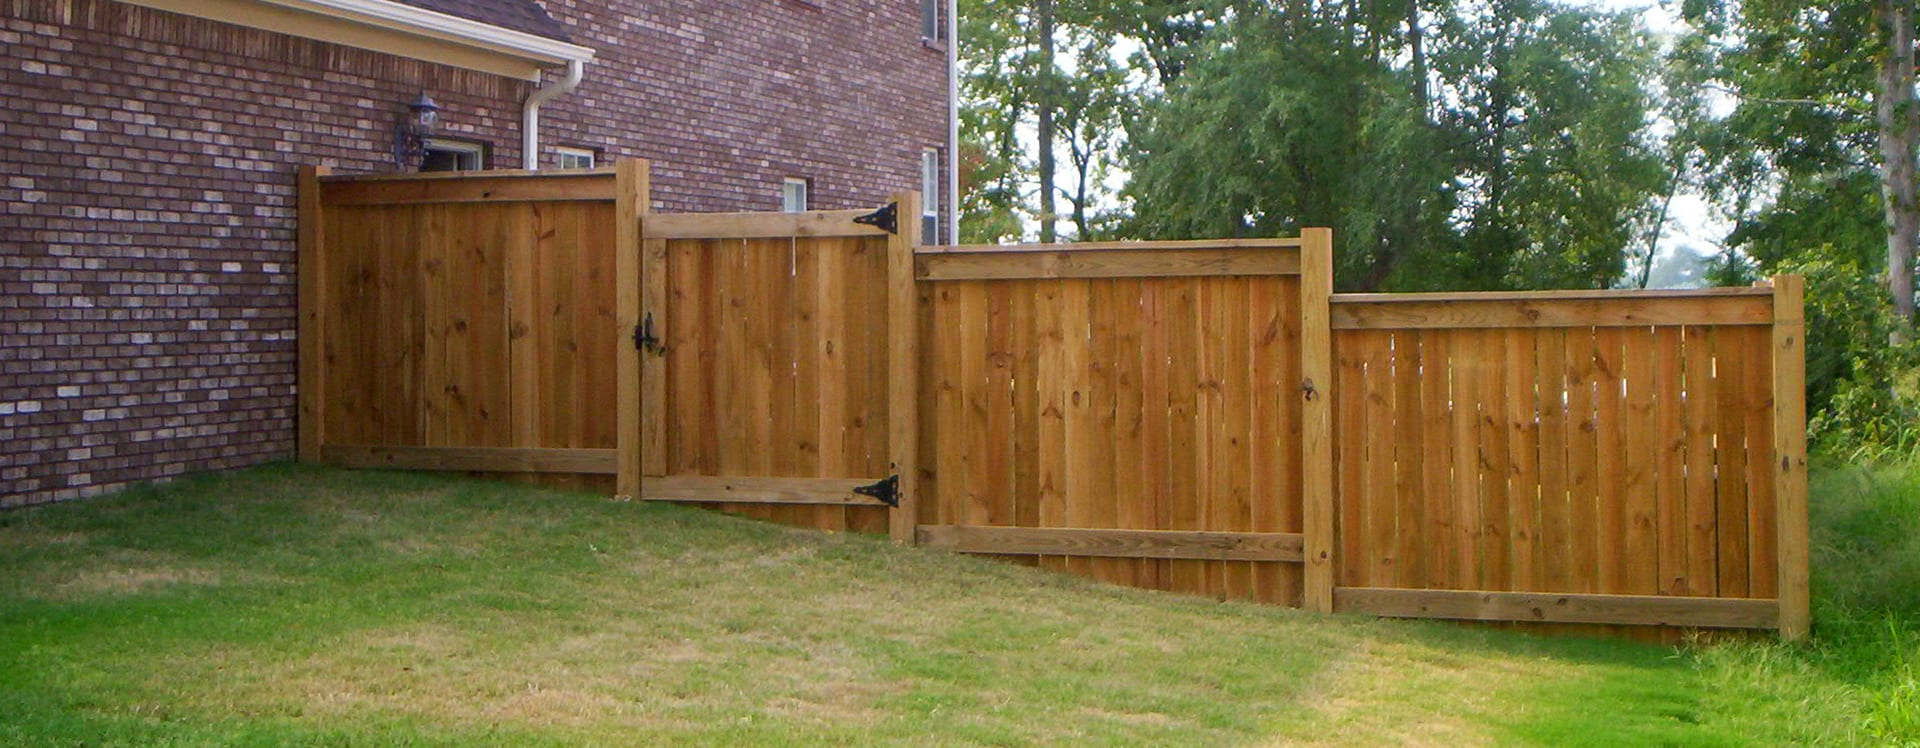 wood fence on a sloped yard - Tupelo